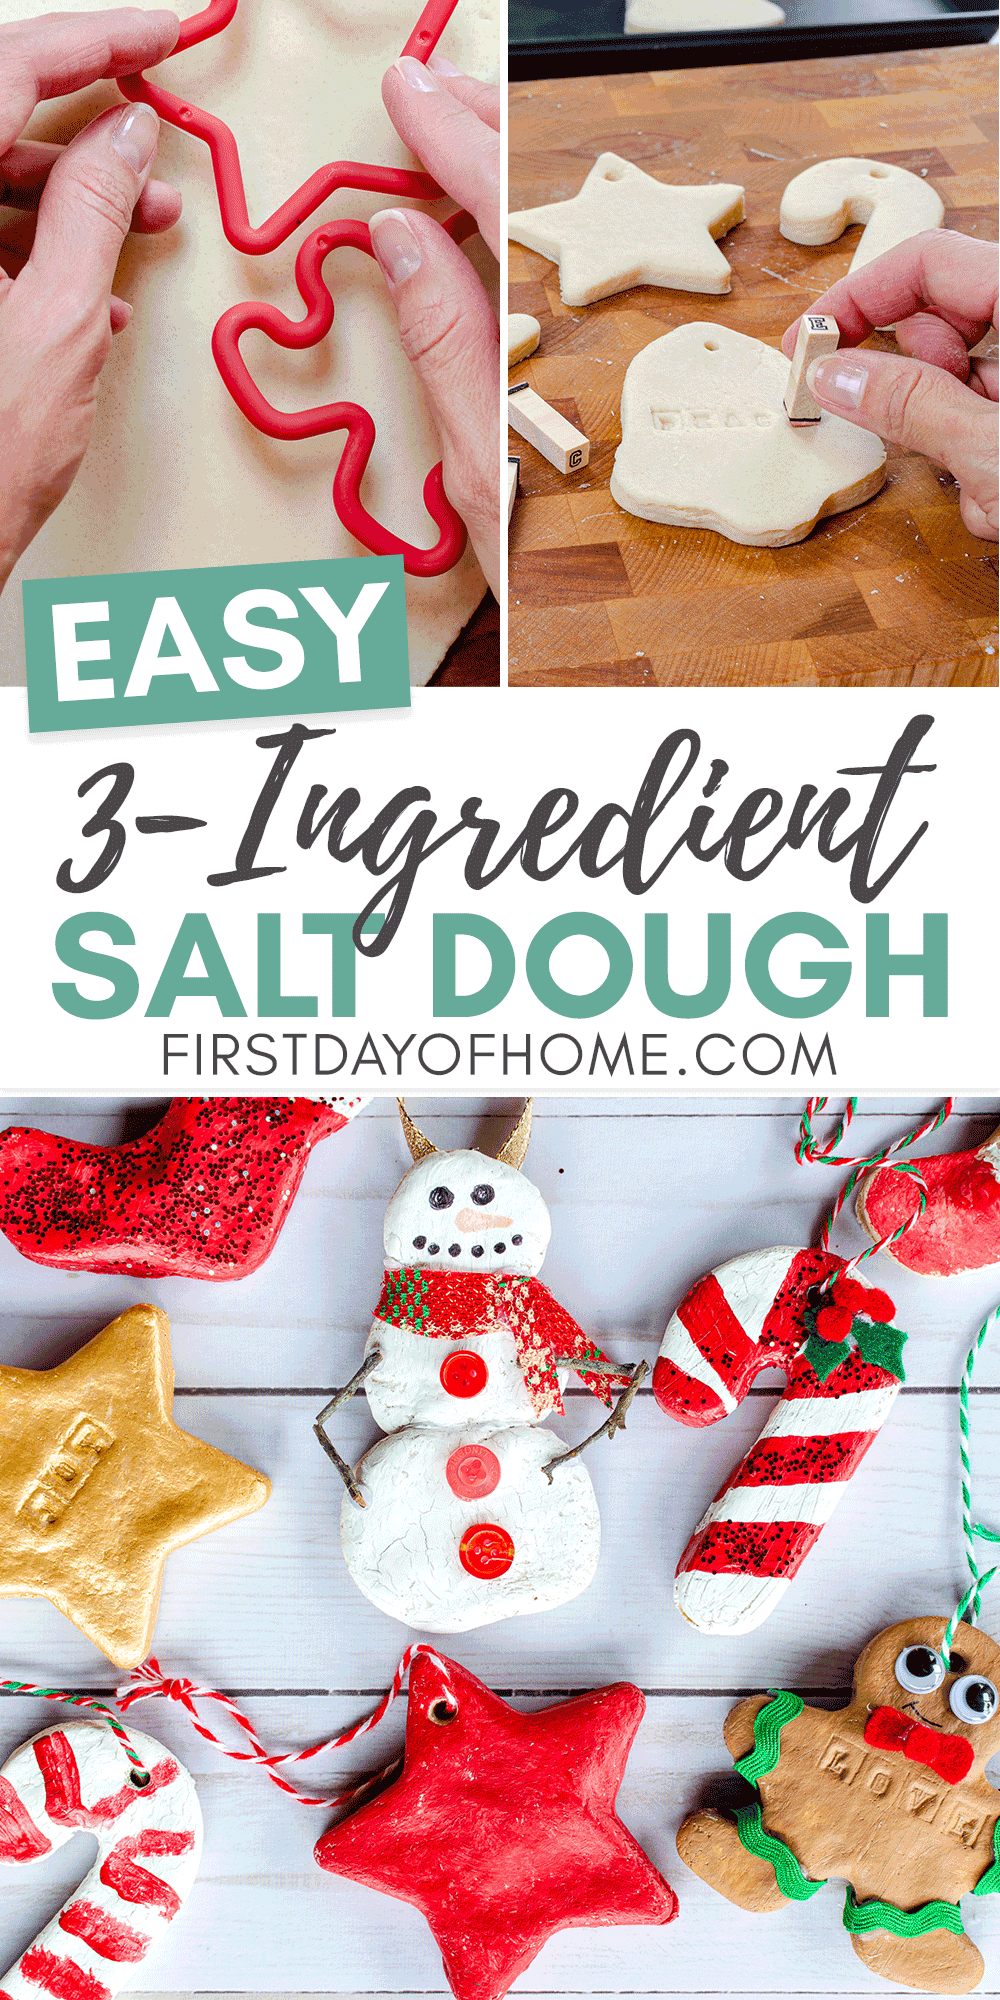 How To Make Salt Dough Ornaments The Kids Will Love Recipe Salt Dough Christmas Ornaments Food Ornaments Dough Ornaments